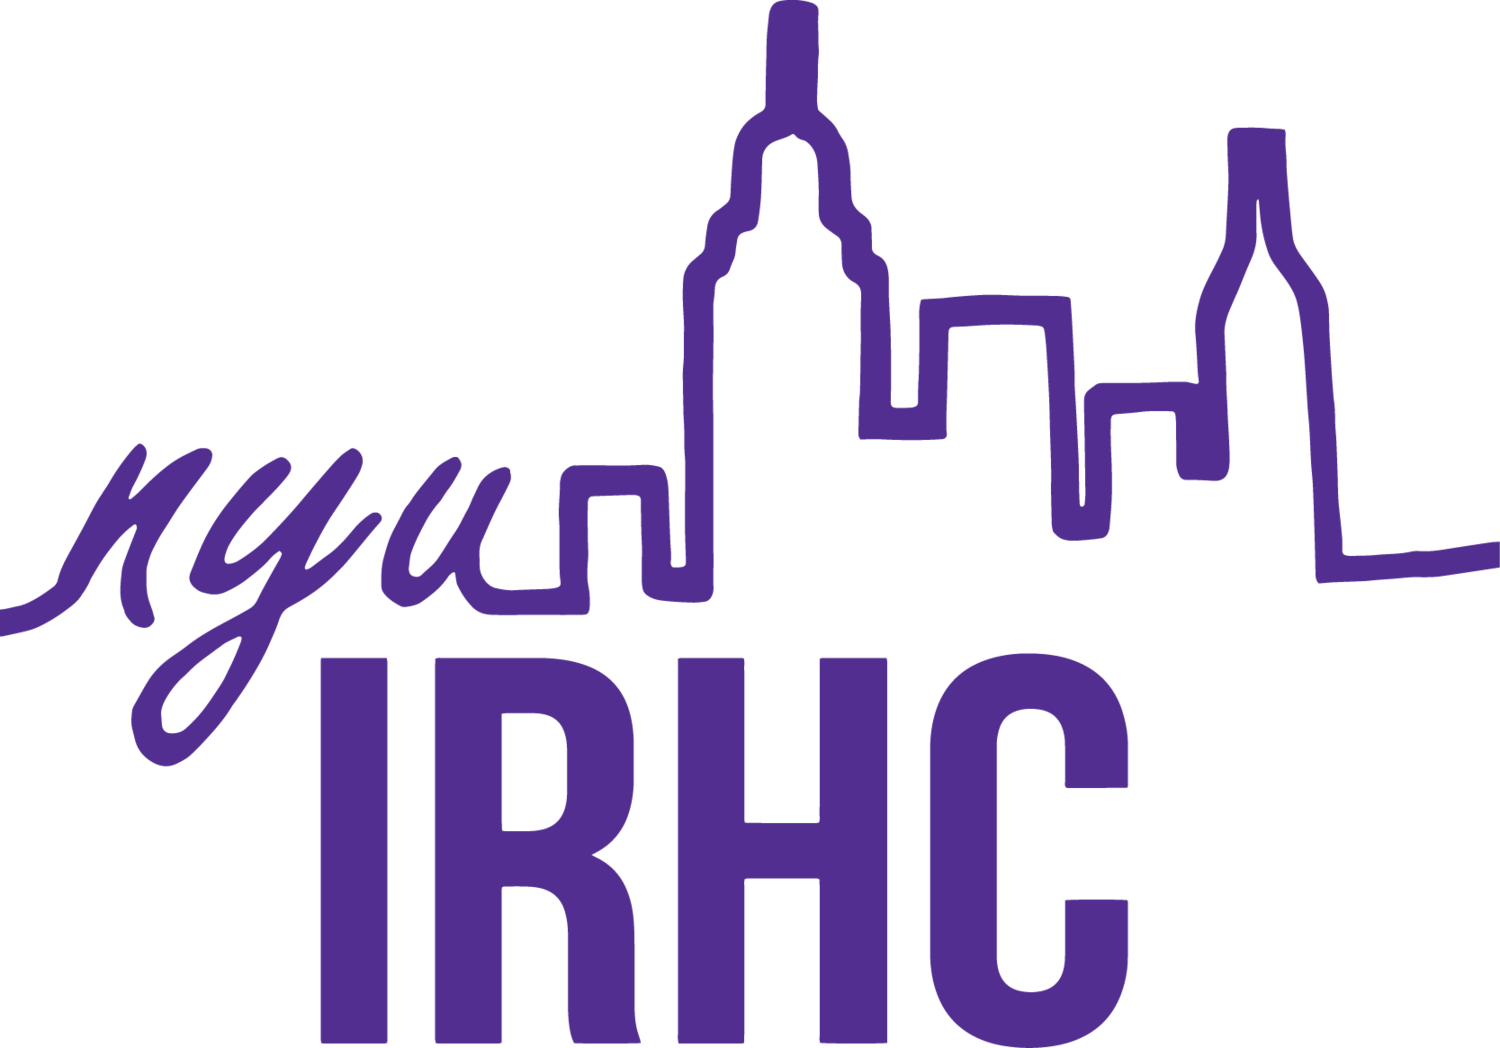 NYU Inter-Residence Hall Council